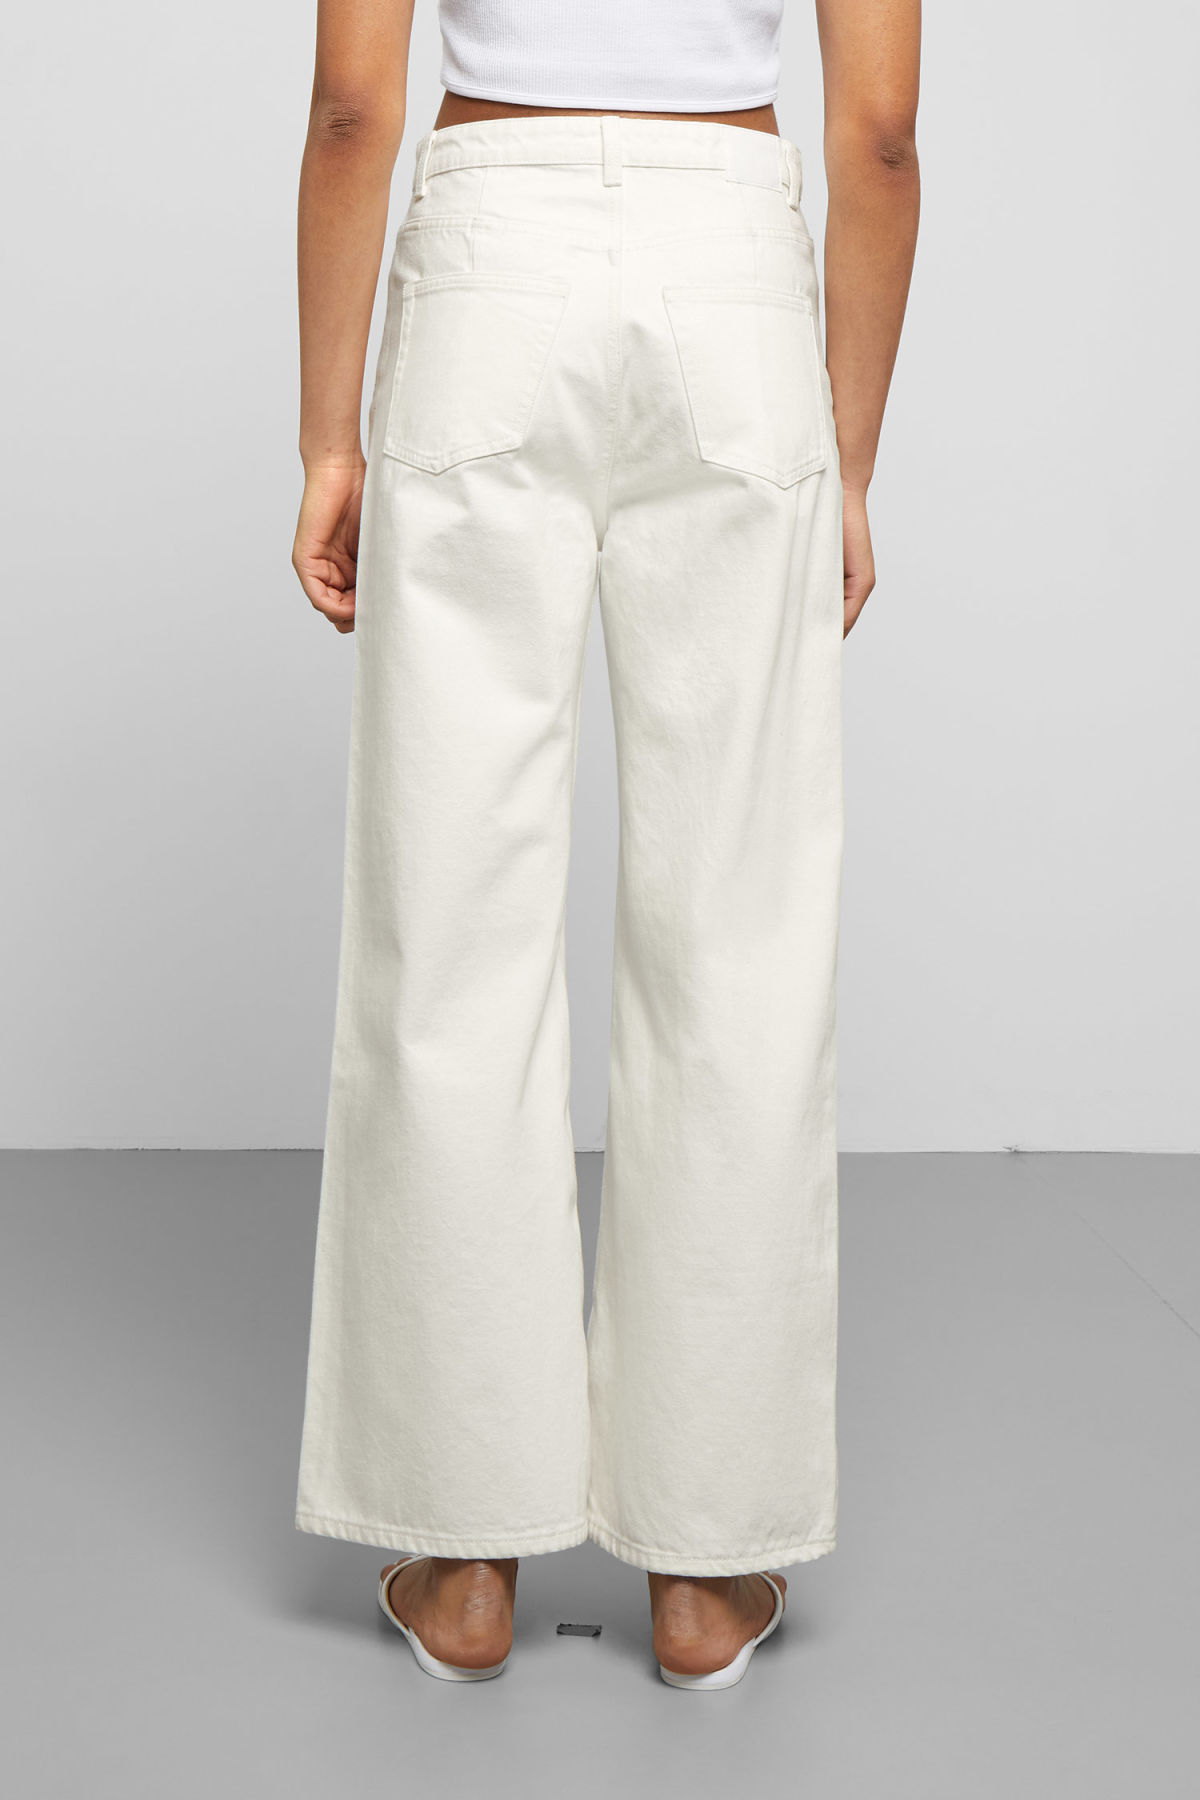 Model side image of Weekday ace white jeans in white